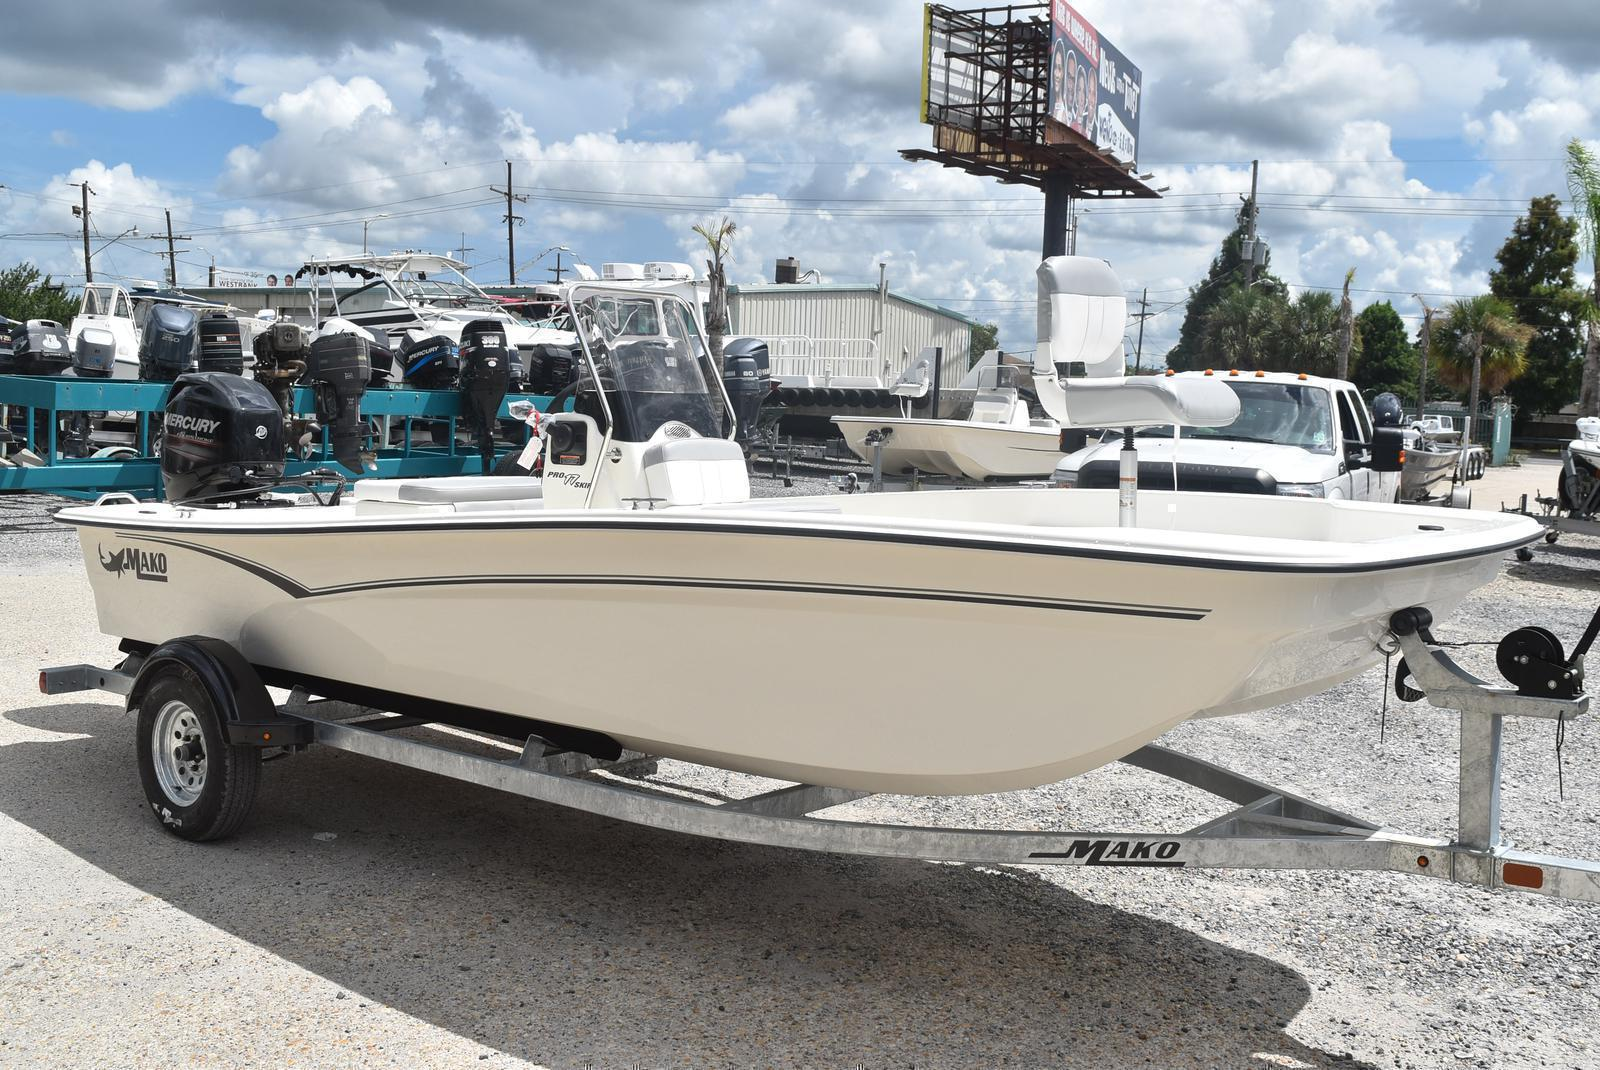 2020 Mako boat for sale, model of the boat is Pro Skiff 17, 75 ELPT & Image # 643 of 702